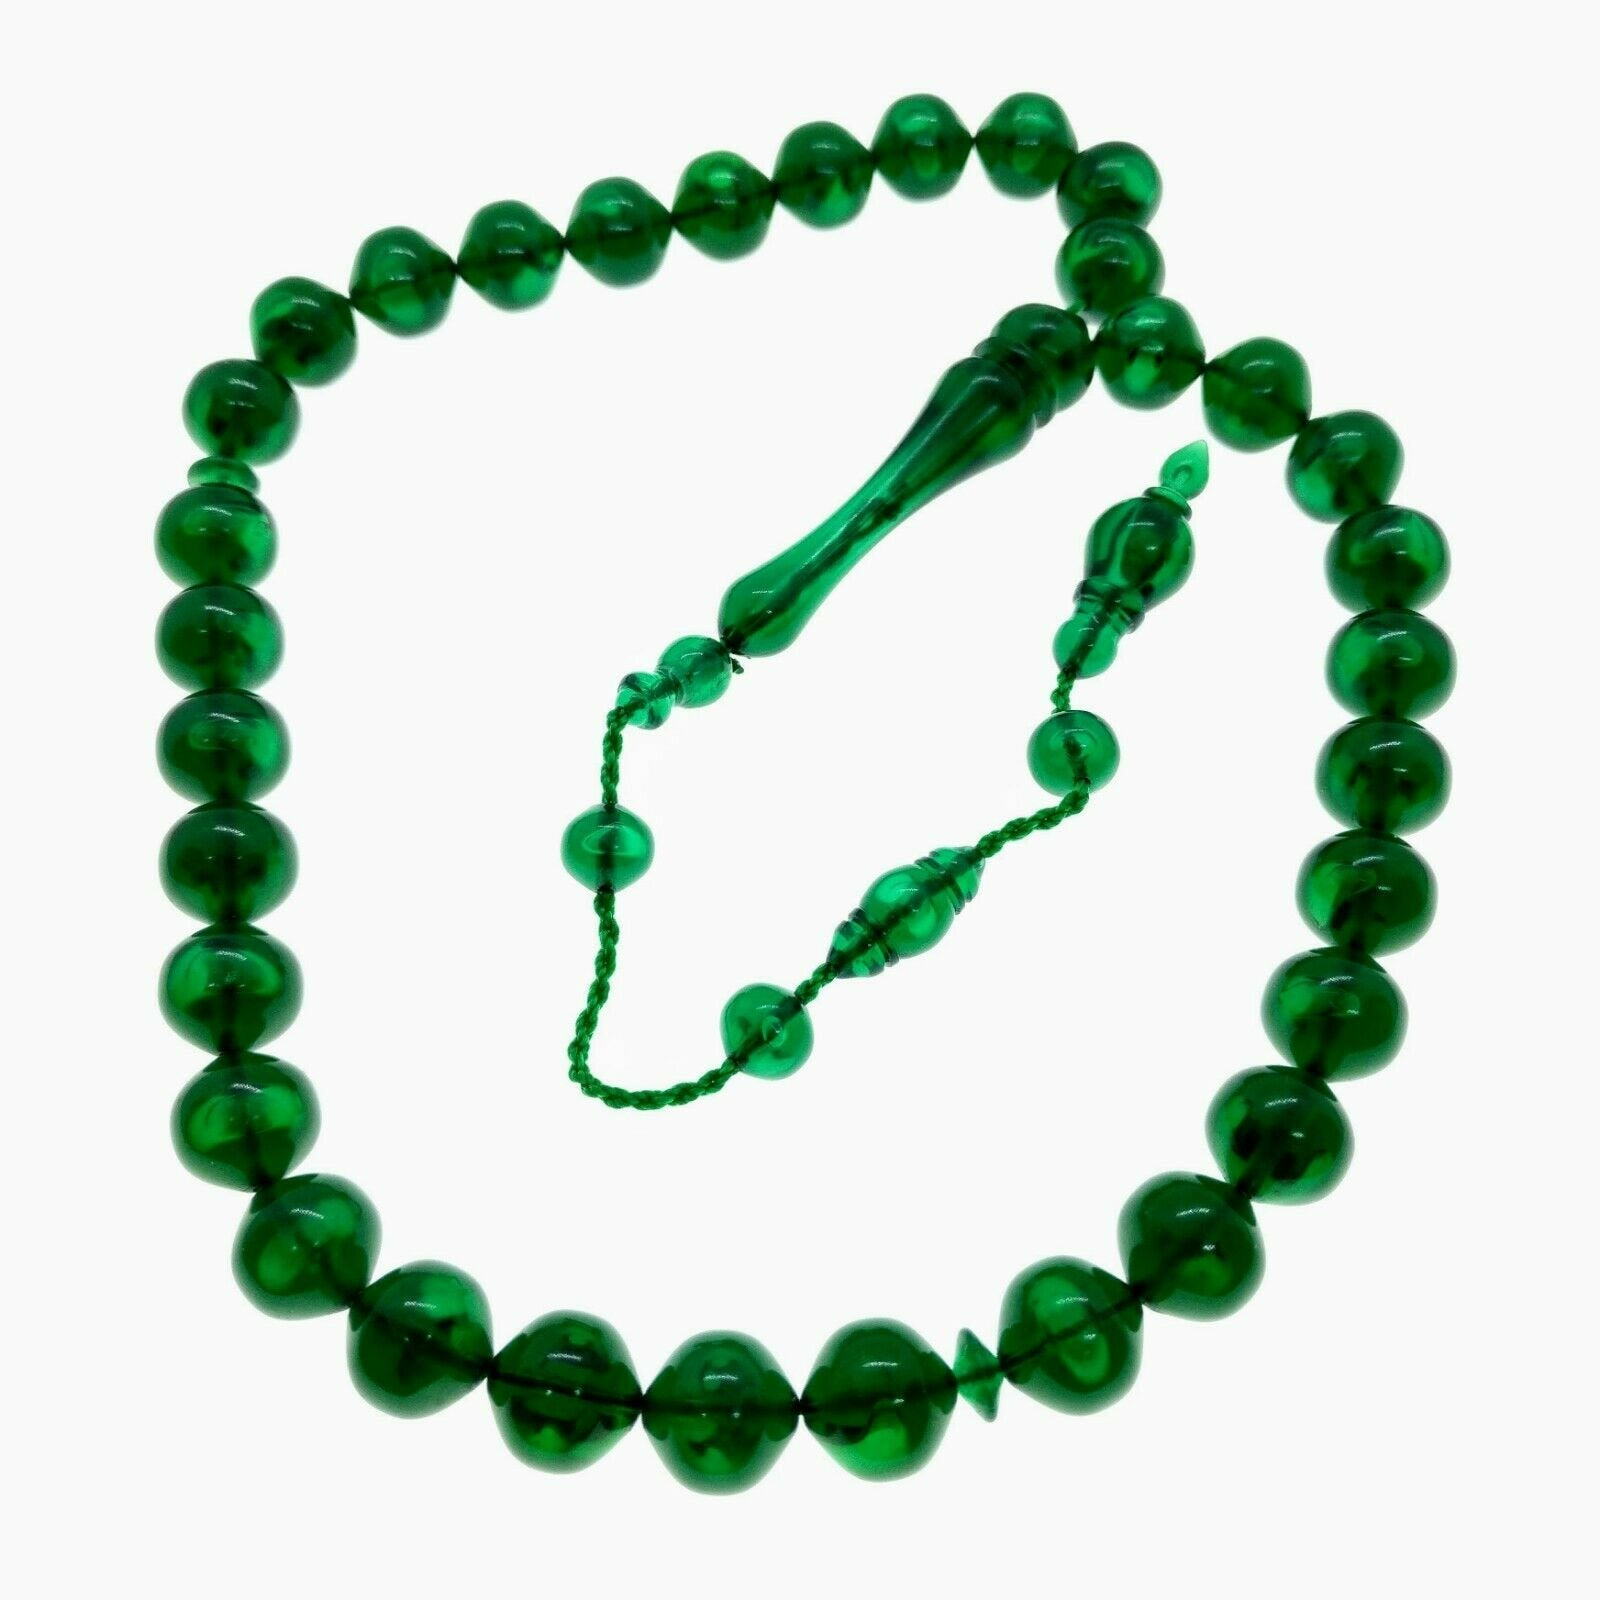 Stylish Round Peaceful Green Prayer Beads Yesil Akrilik Tesbih Muslim Rosary Islam Allah Tasbih Tasbeeh 334